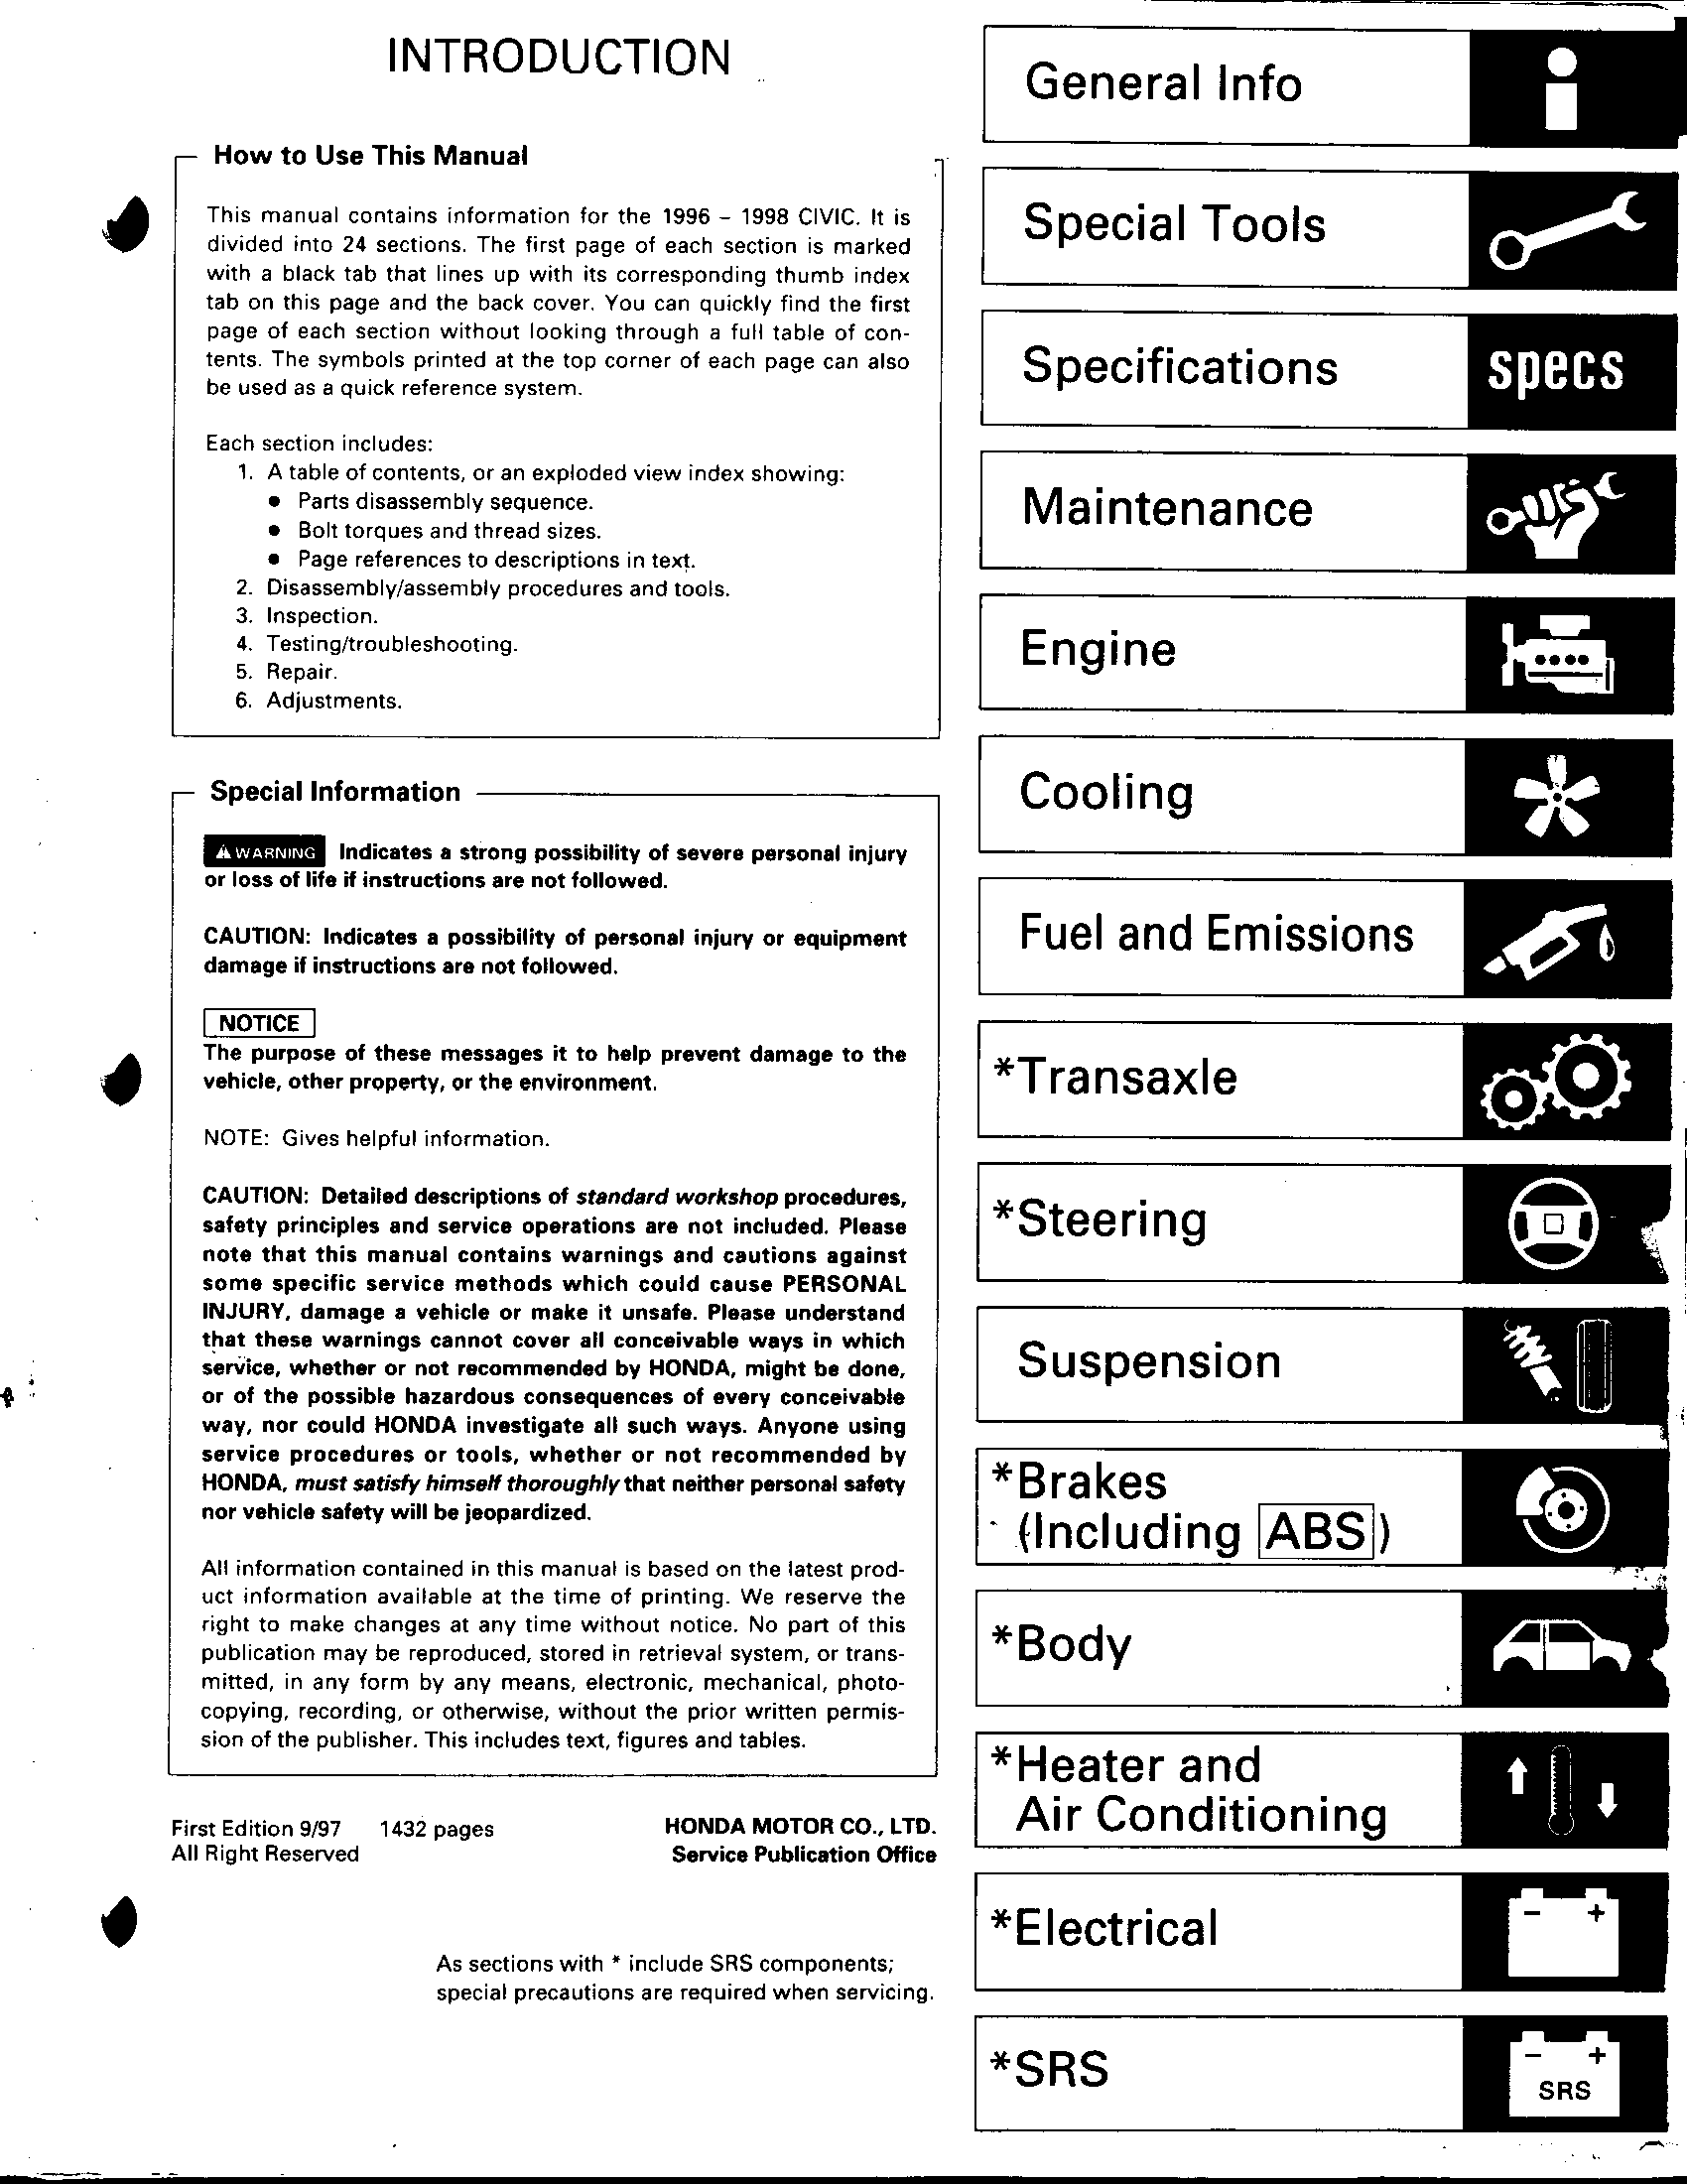 honda civic  96 98  service manual pdf